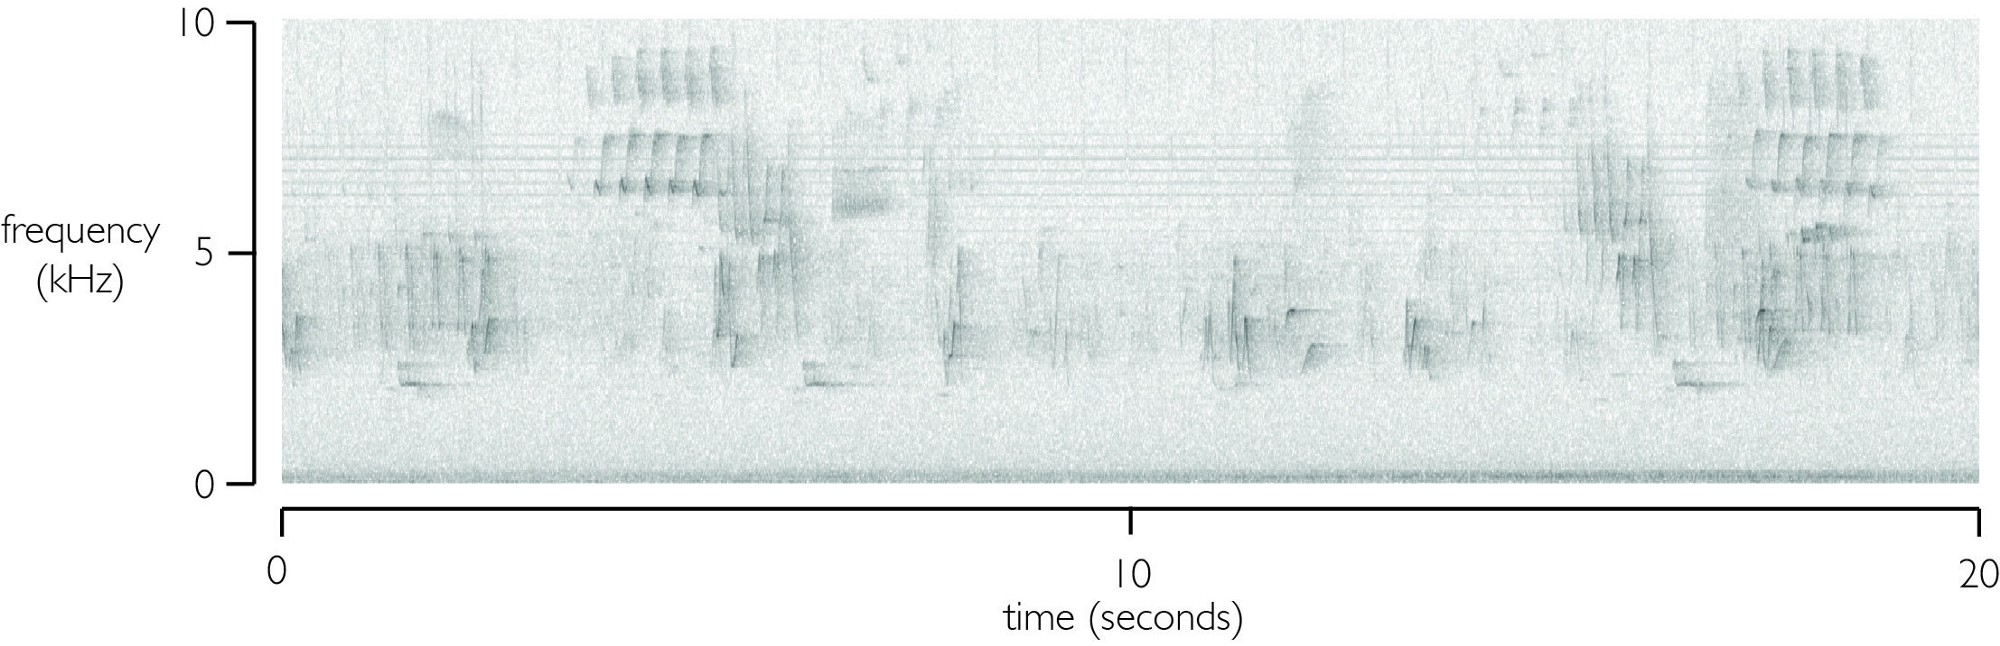 An image showing audio frequency over time